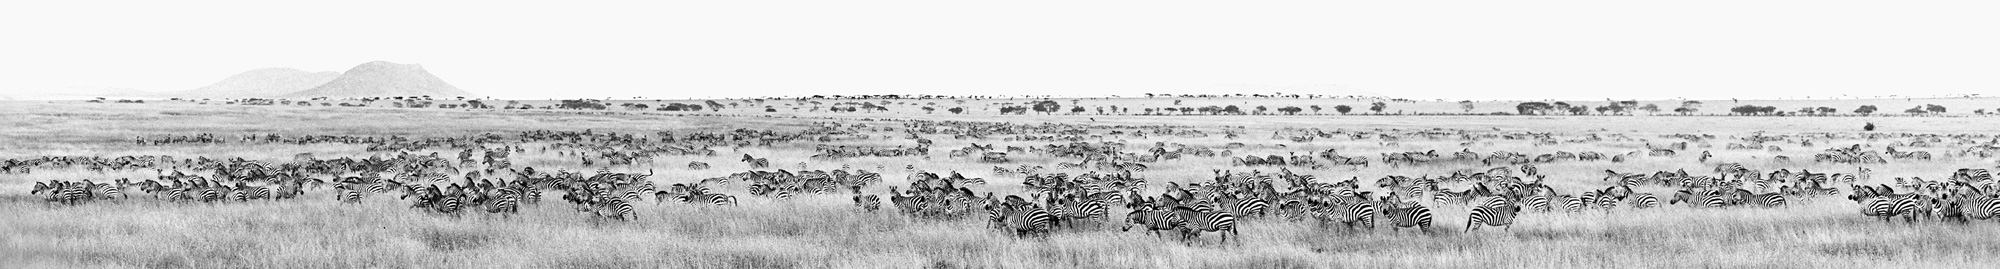 Greg Dimijian, Zera Herd in Serengeti